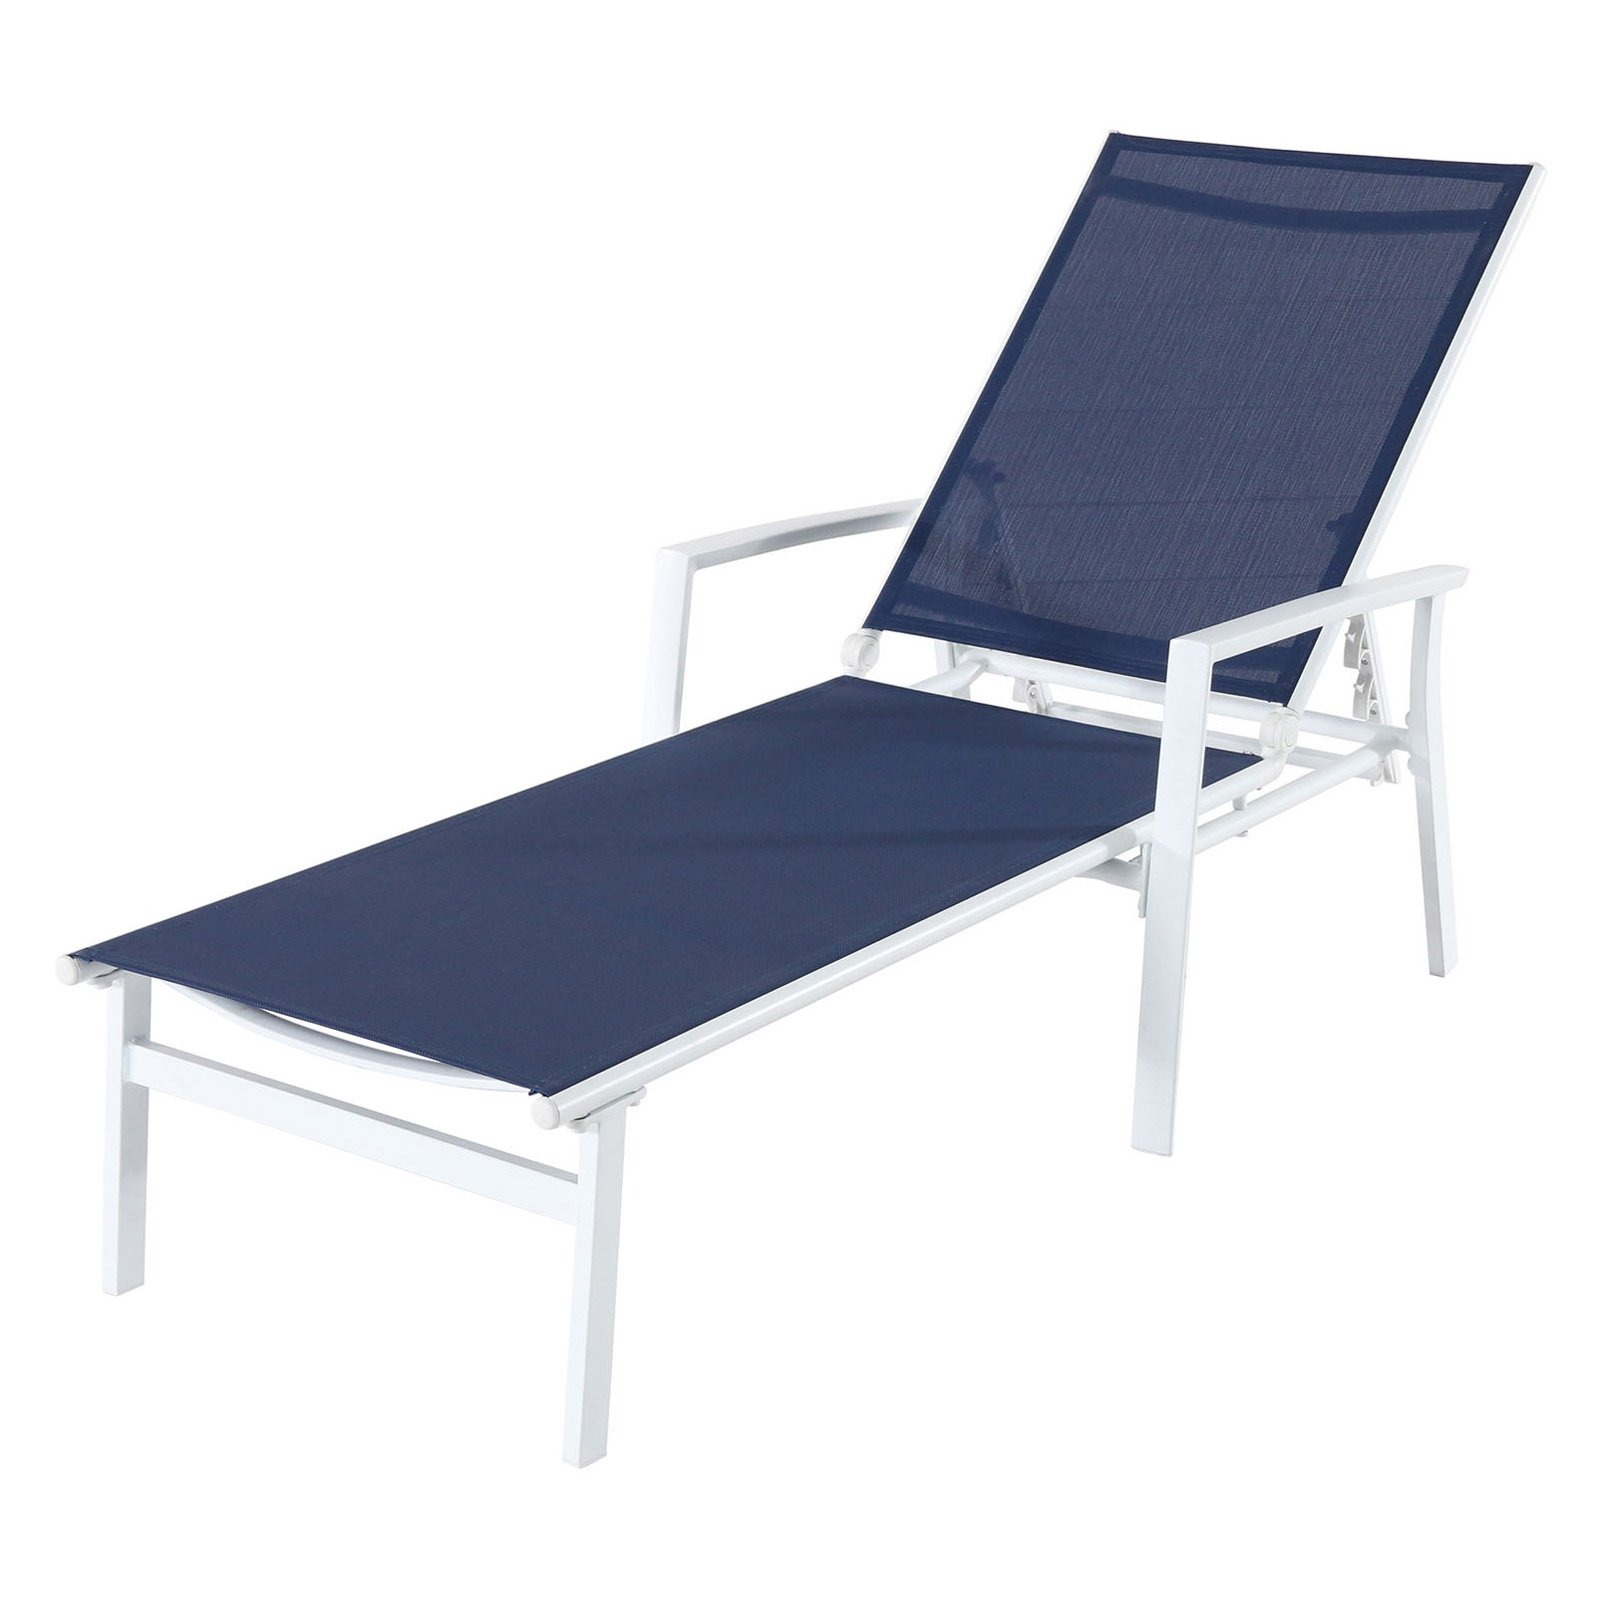 Outdoor Cambridge Nova Sling Adjustable Chaise Lounge Navy Throughout Widely Used Myers Outdoor Aluminum Mesh Chaise Lounges (View 20 of 25)